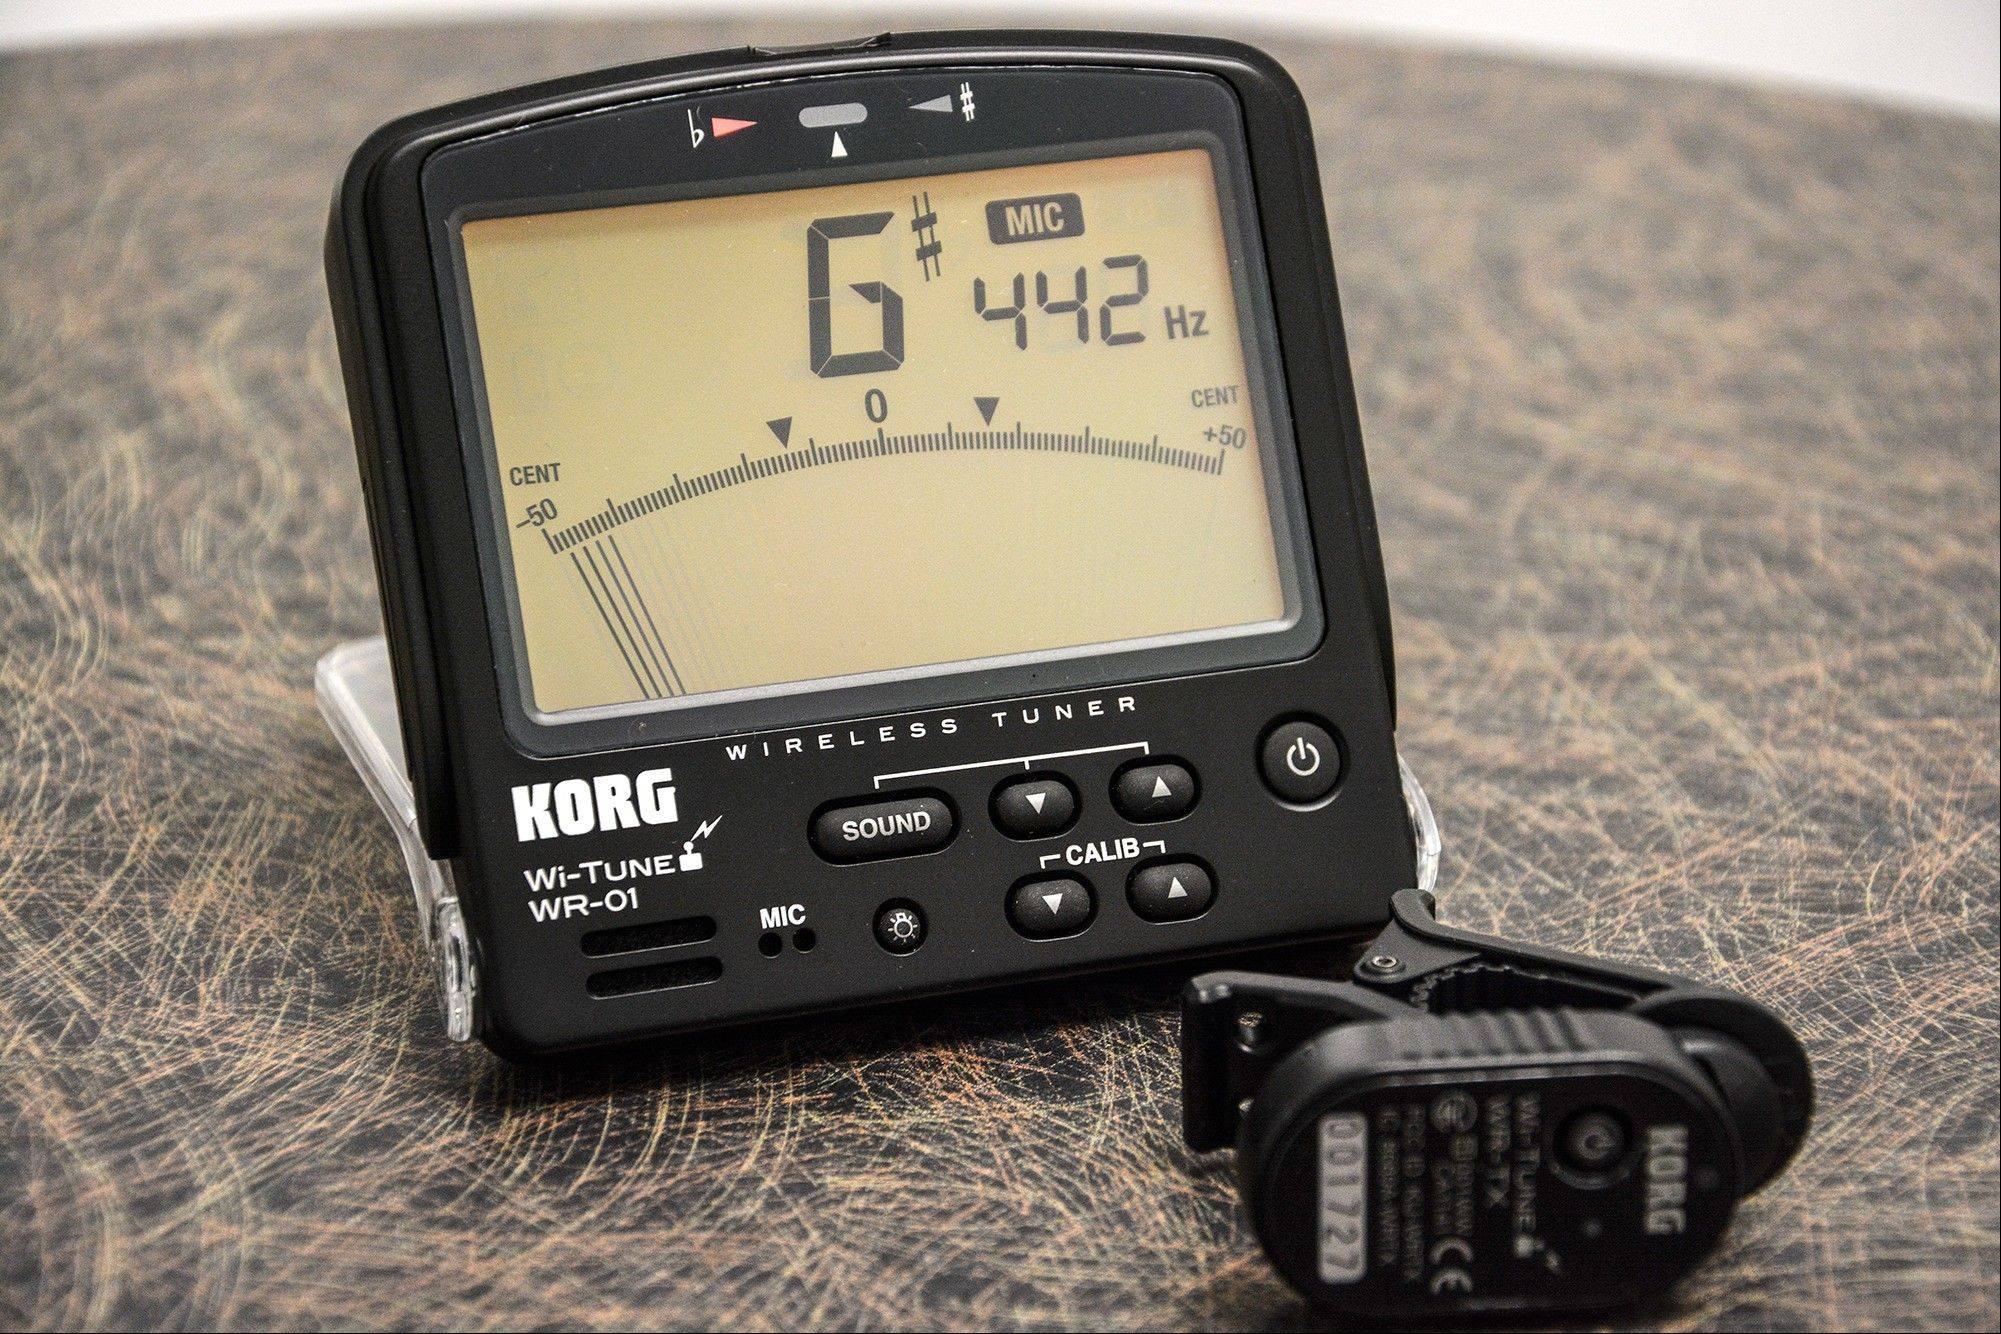 The Korg Wi-Tune wireless musical instrument tuner.